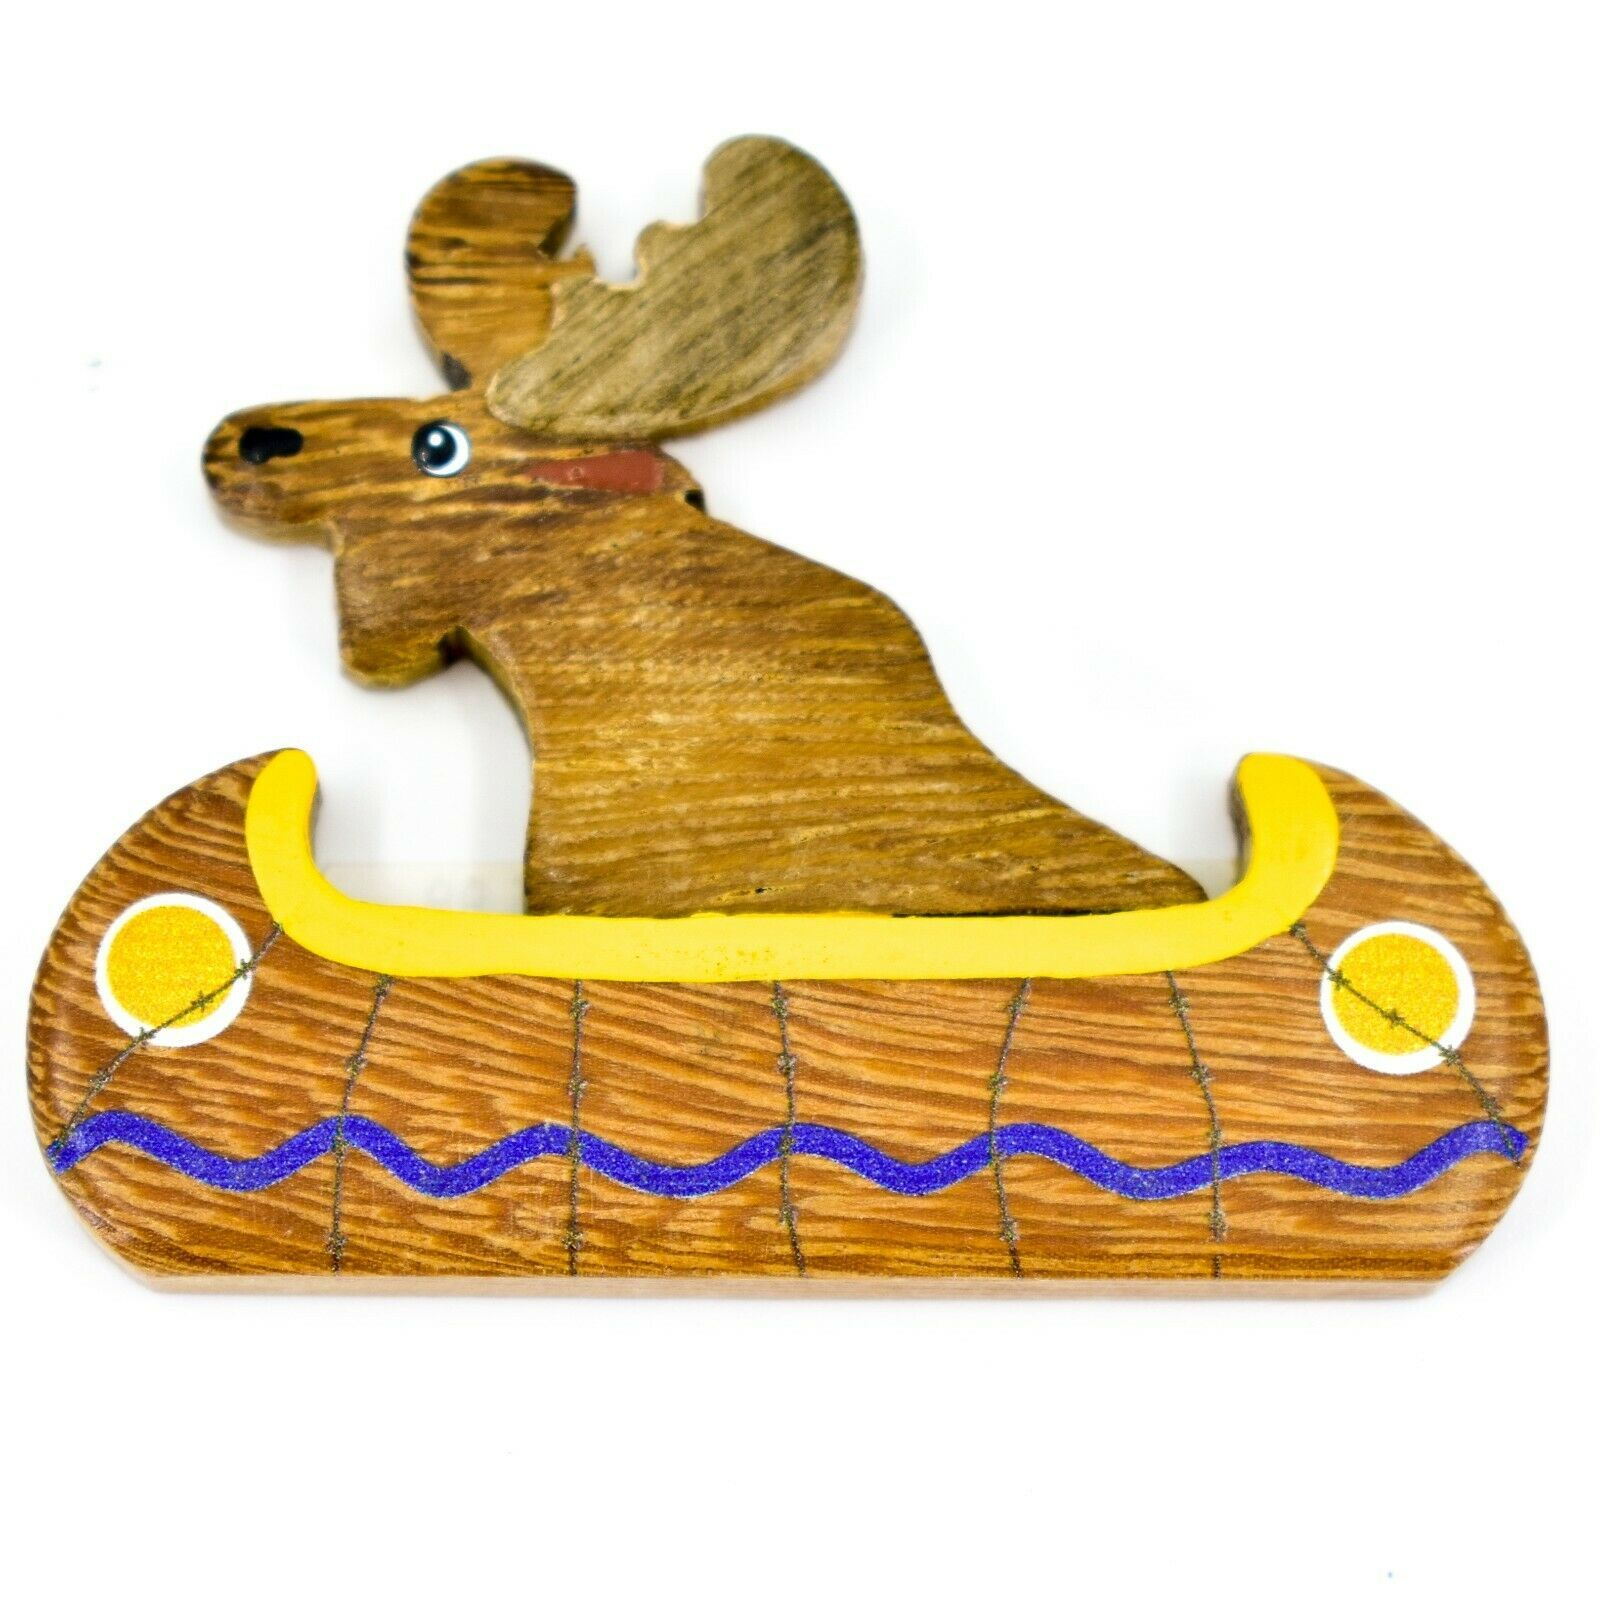 Northwoods Moose Riding in Canoe Painted Wood Rustic Cabin Refrigerator Magnet